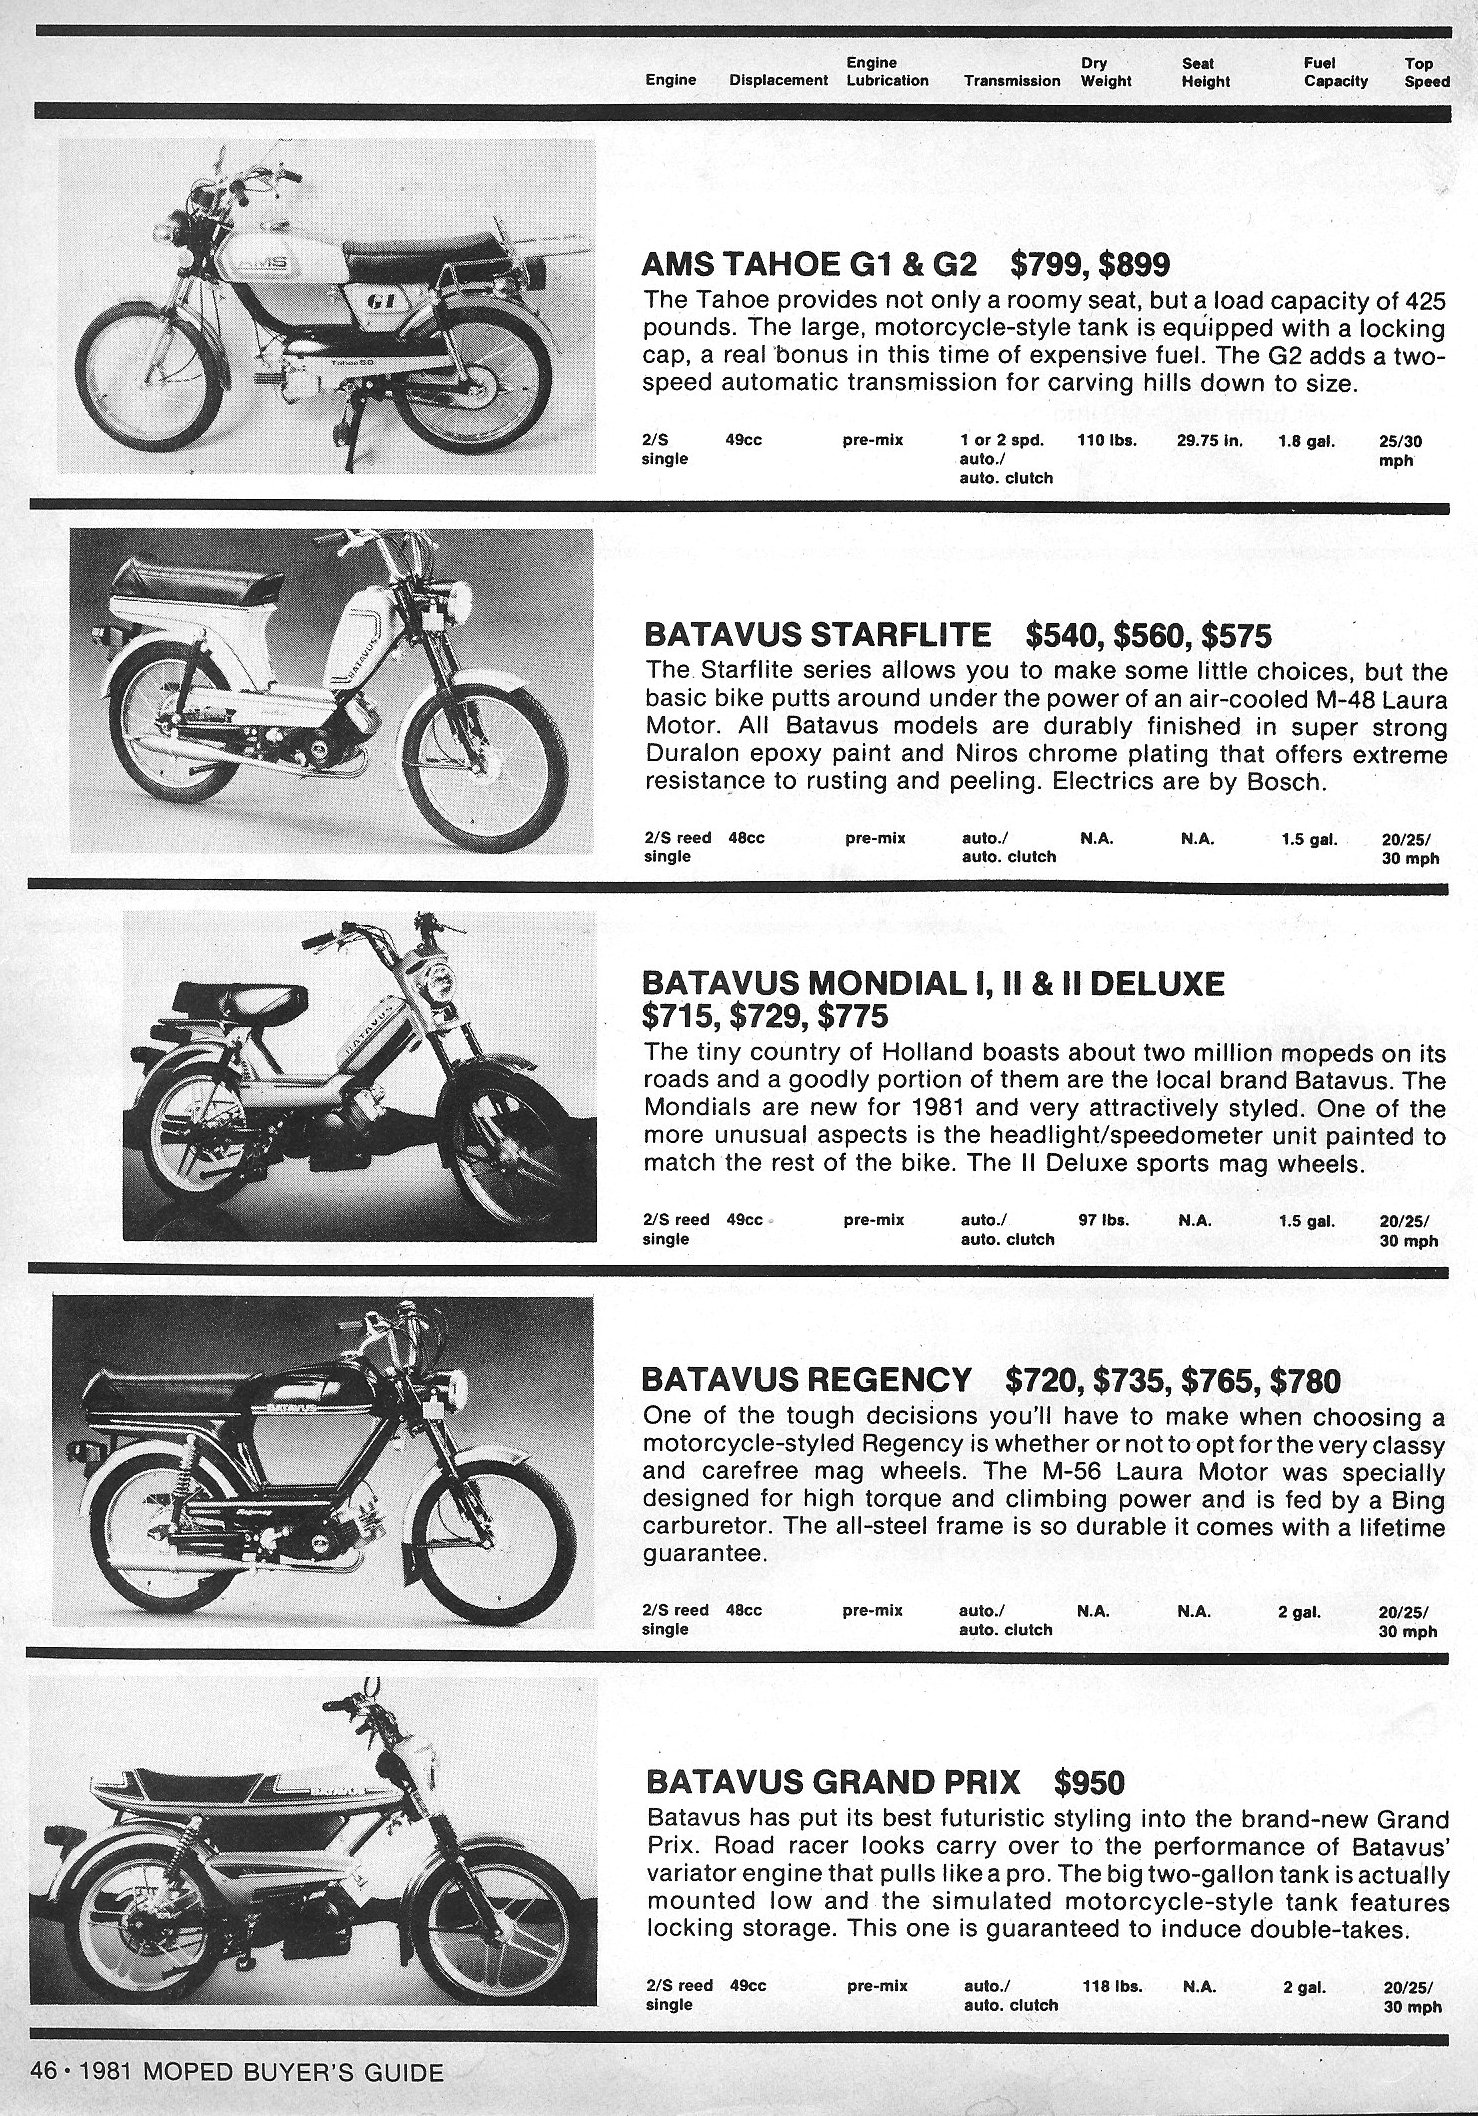 buyers guide acirc myrons mopeds 1981 buyers guide p46